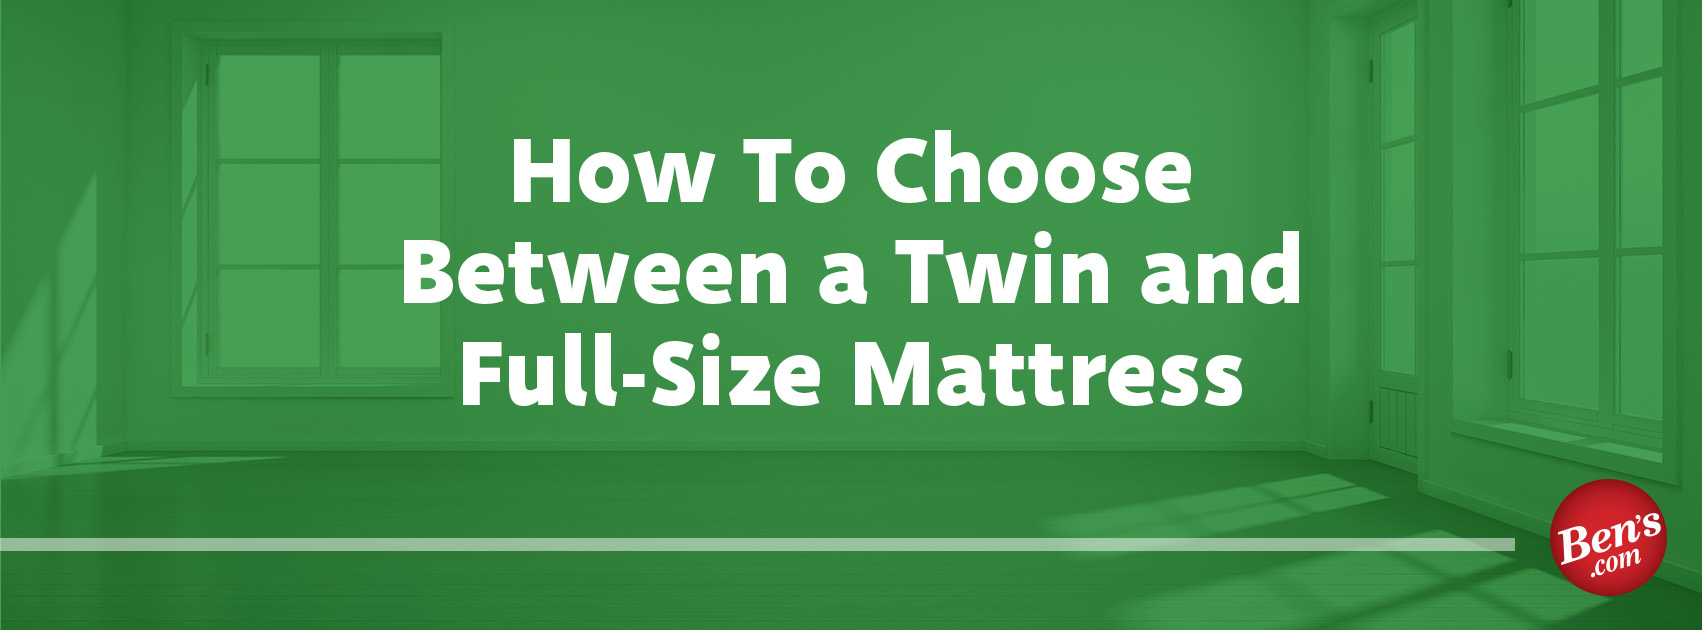 How to Choose Between a Twin and Full-Size Mattress | Ben's